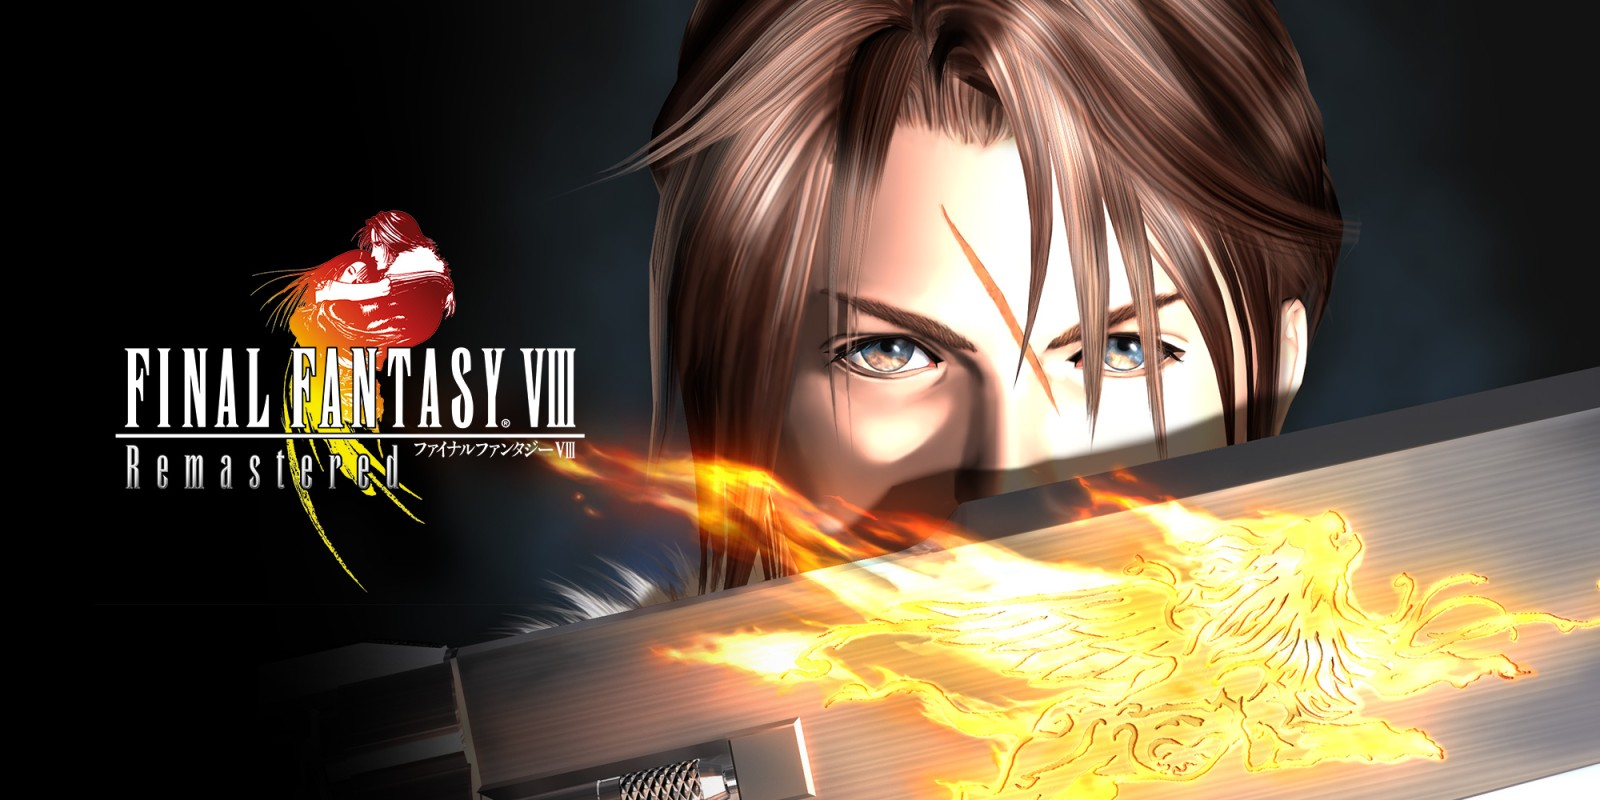 Final Fantasy VIII Remastered Review (Switch)